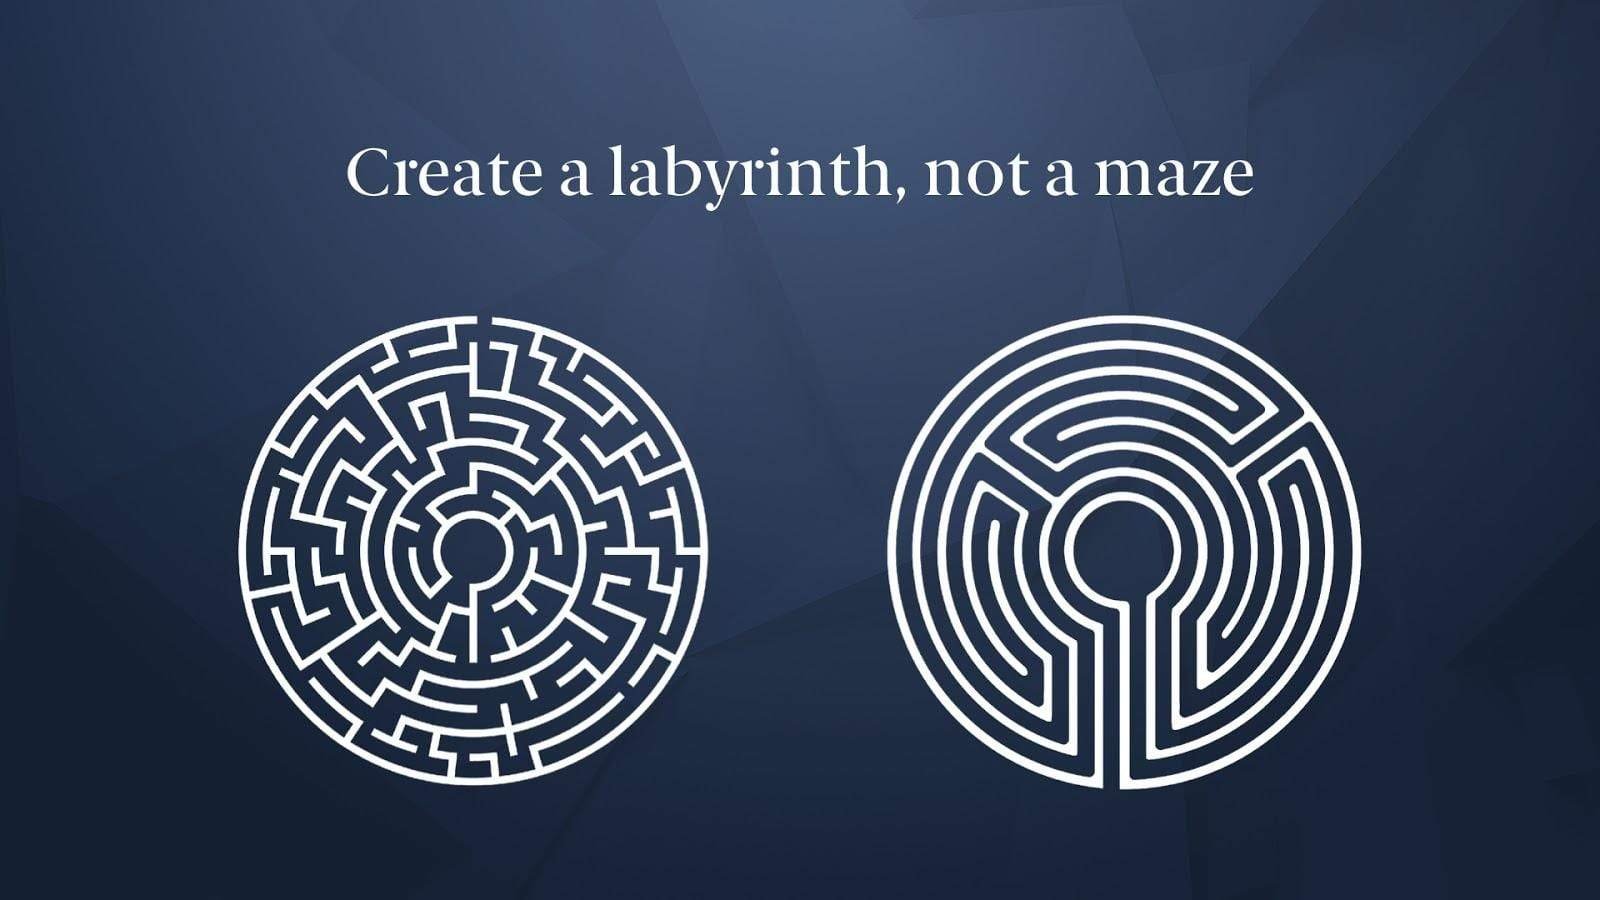 A labyrinth and maze are displayed side by side to illustrate the difference between convoluted and well organized stories.